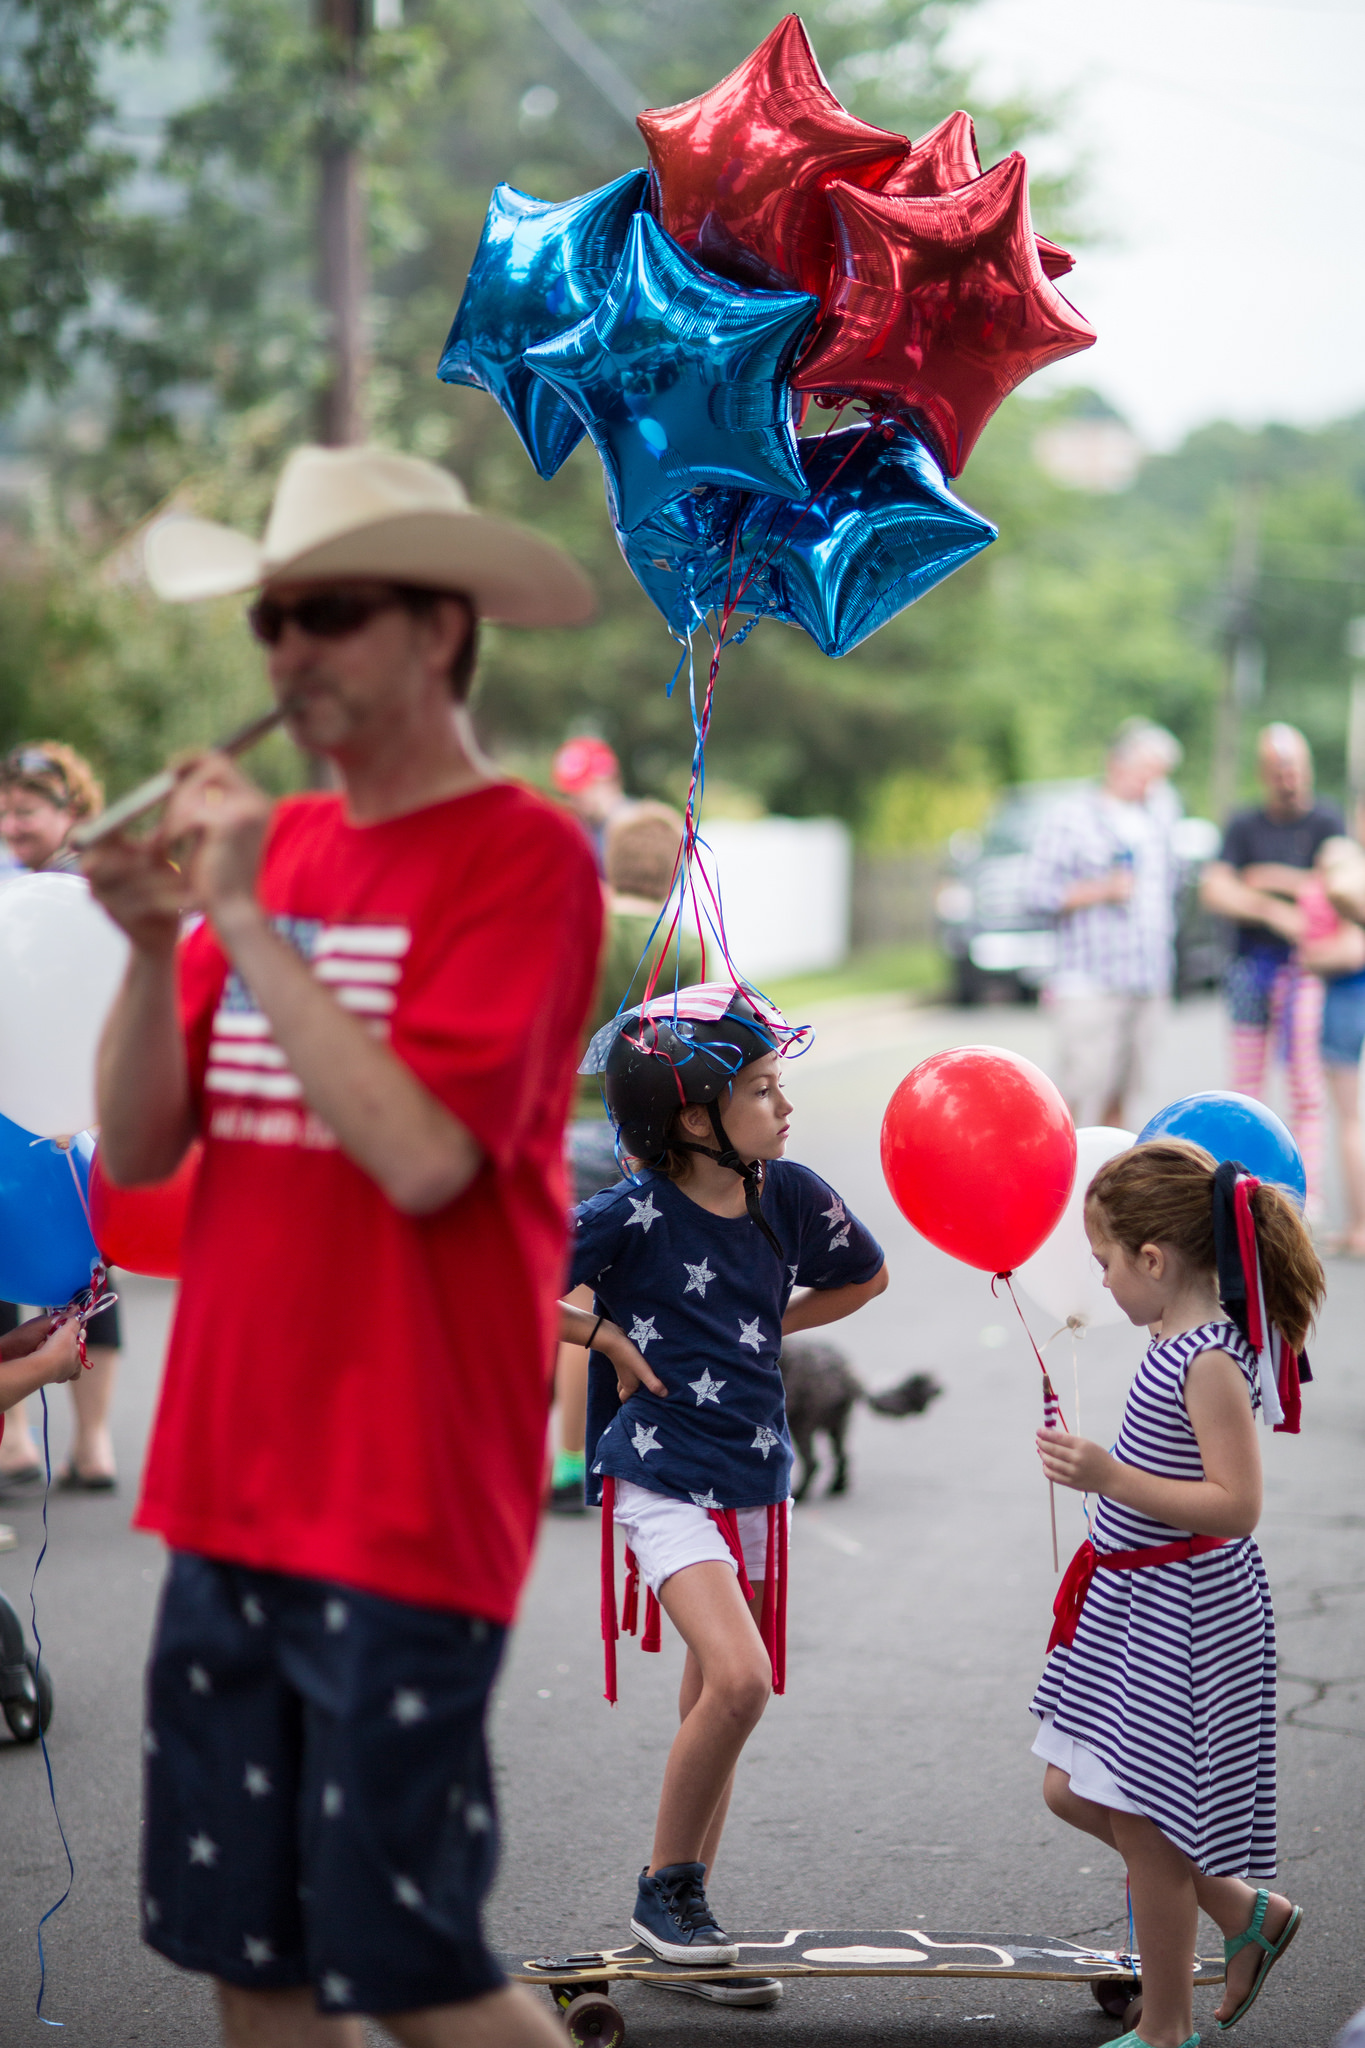 Barcroft July 4 2016  by  Dennis Dimick , used with permission from the photographer.